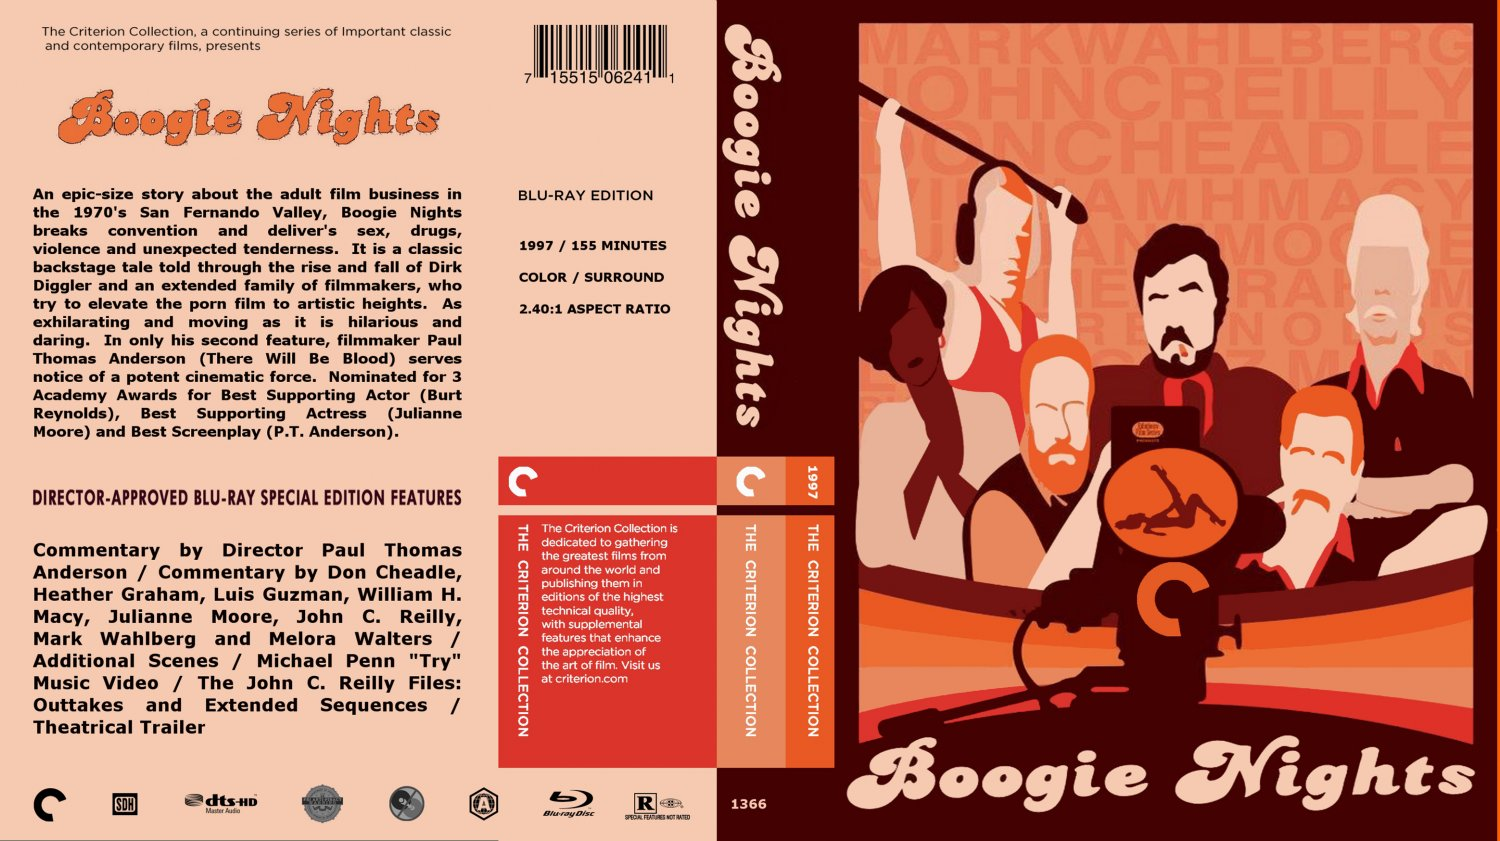 Boogie nights dvd cover think